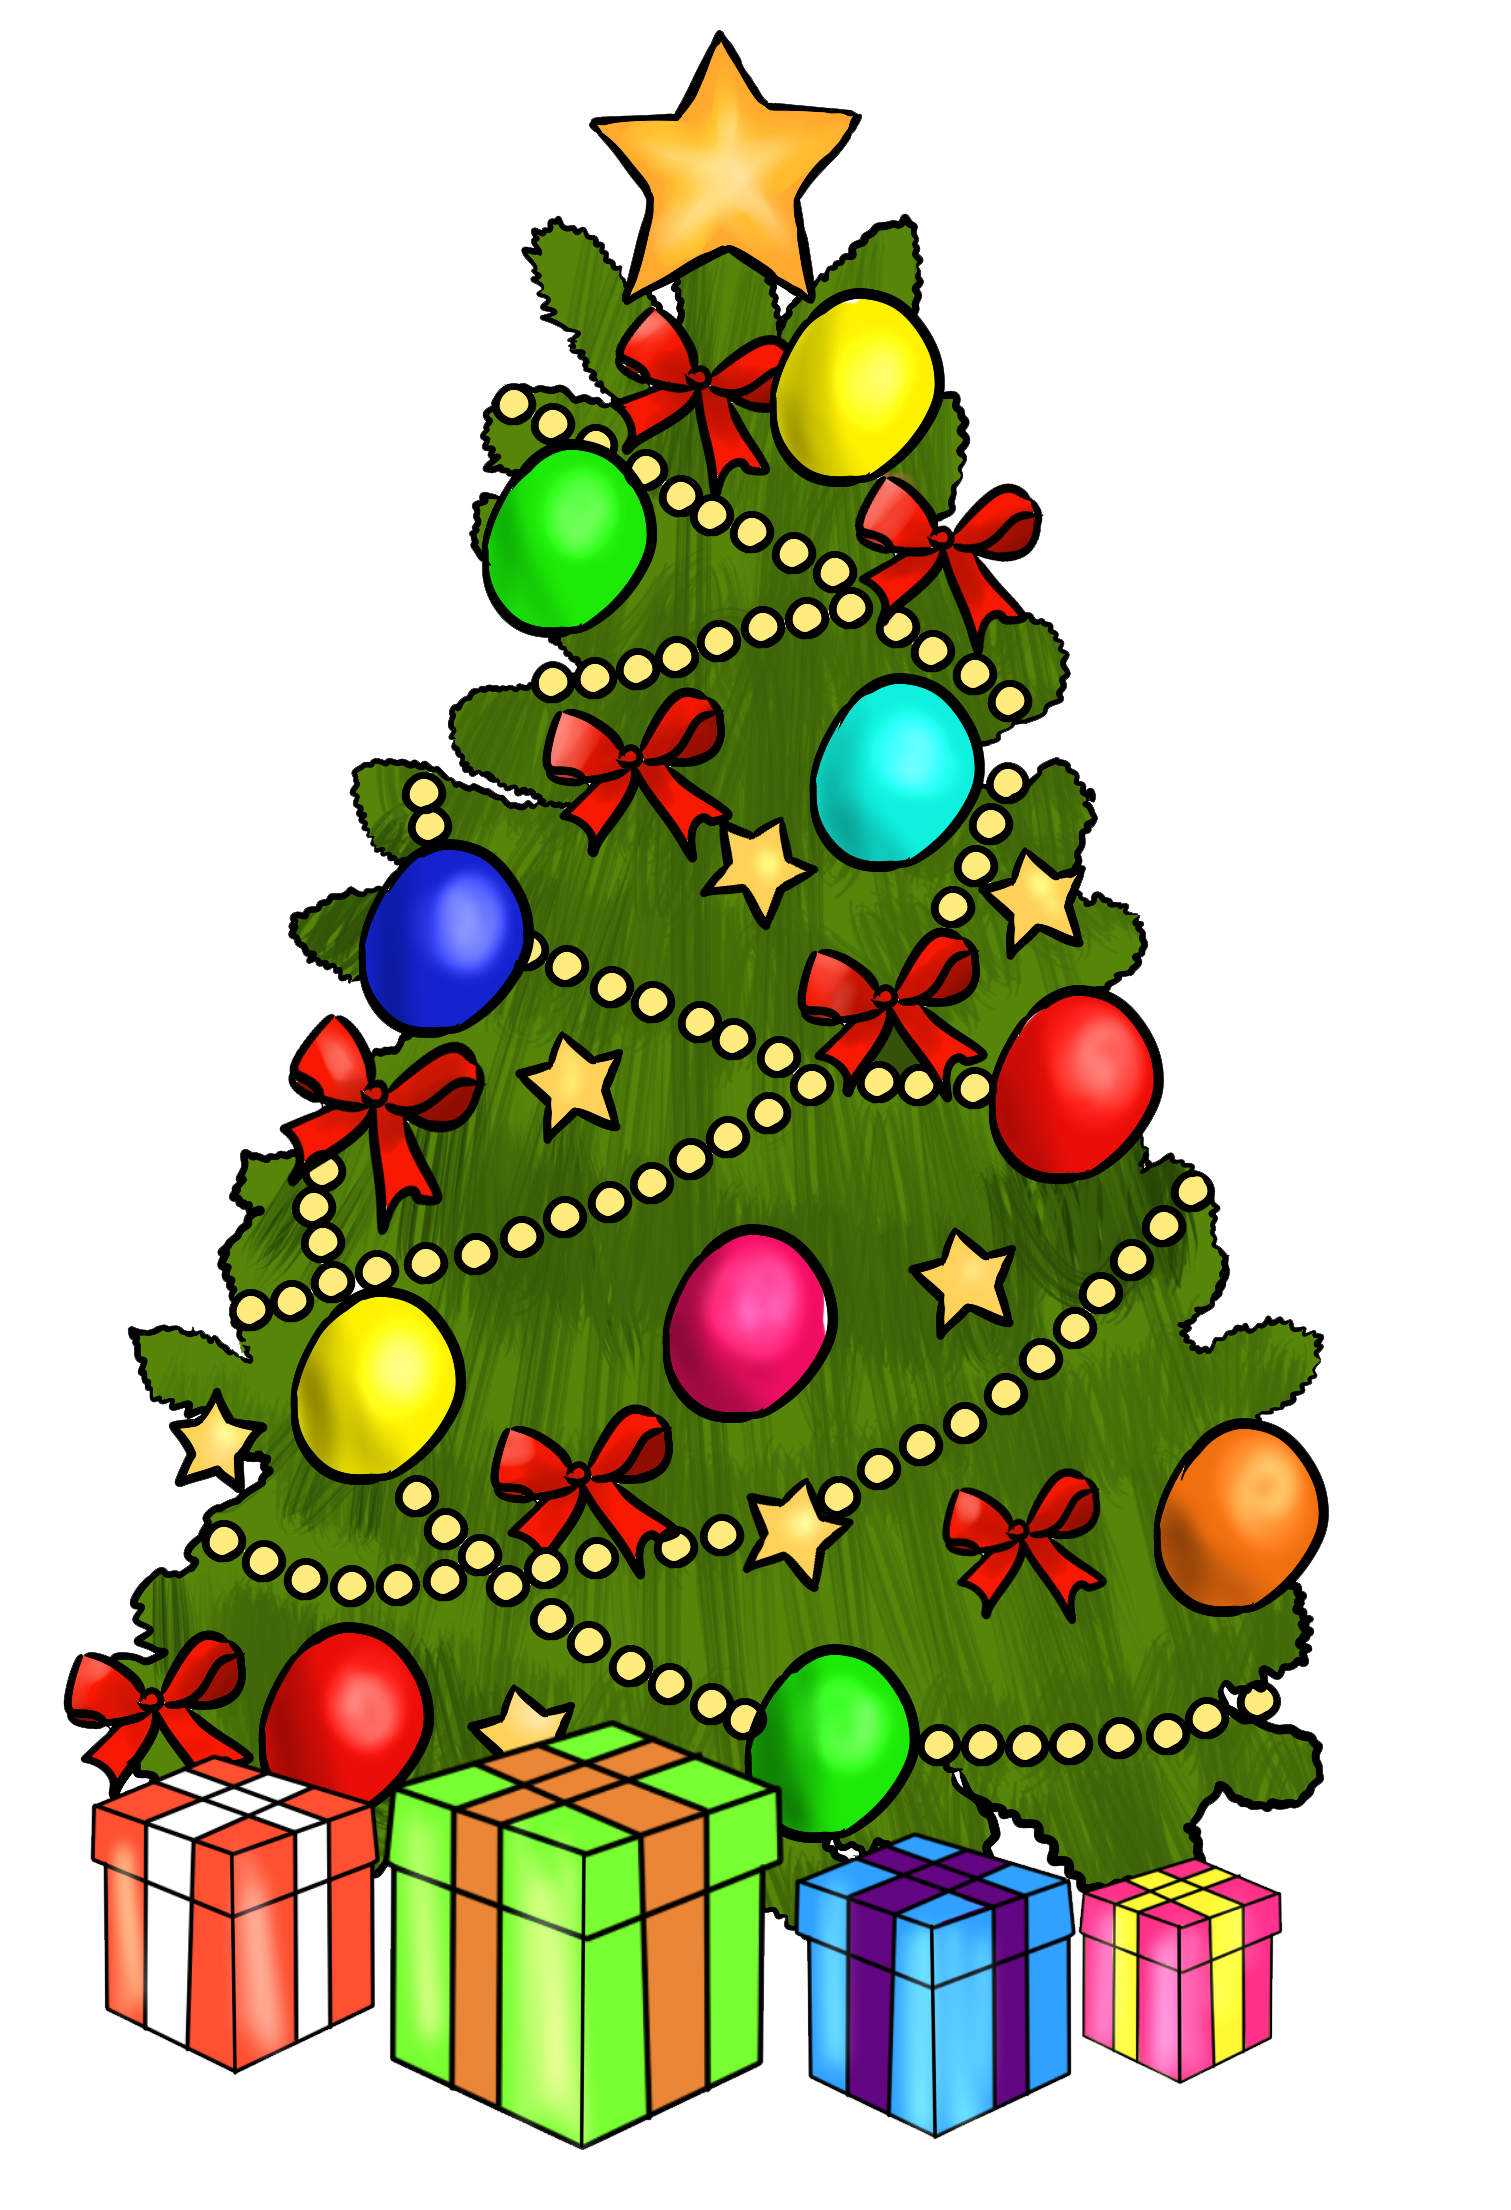 Free christmas tree images clipart. Clip art large